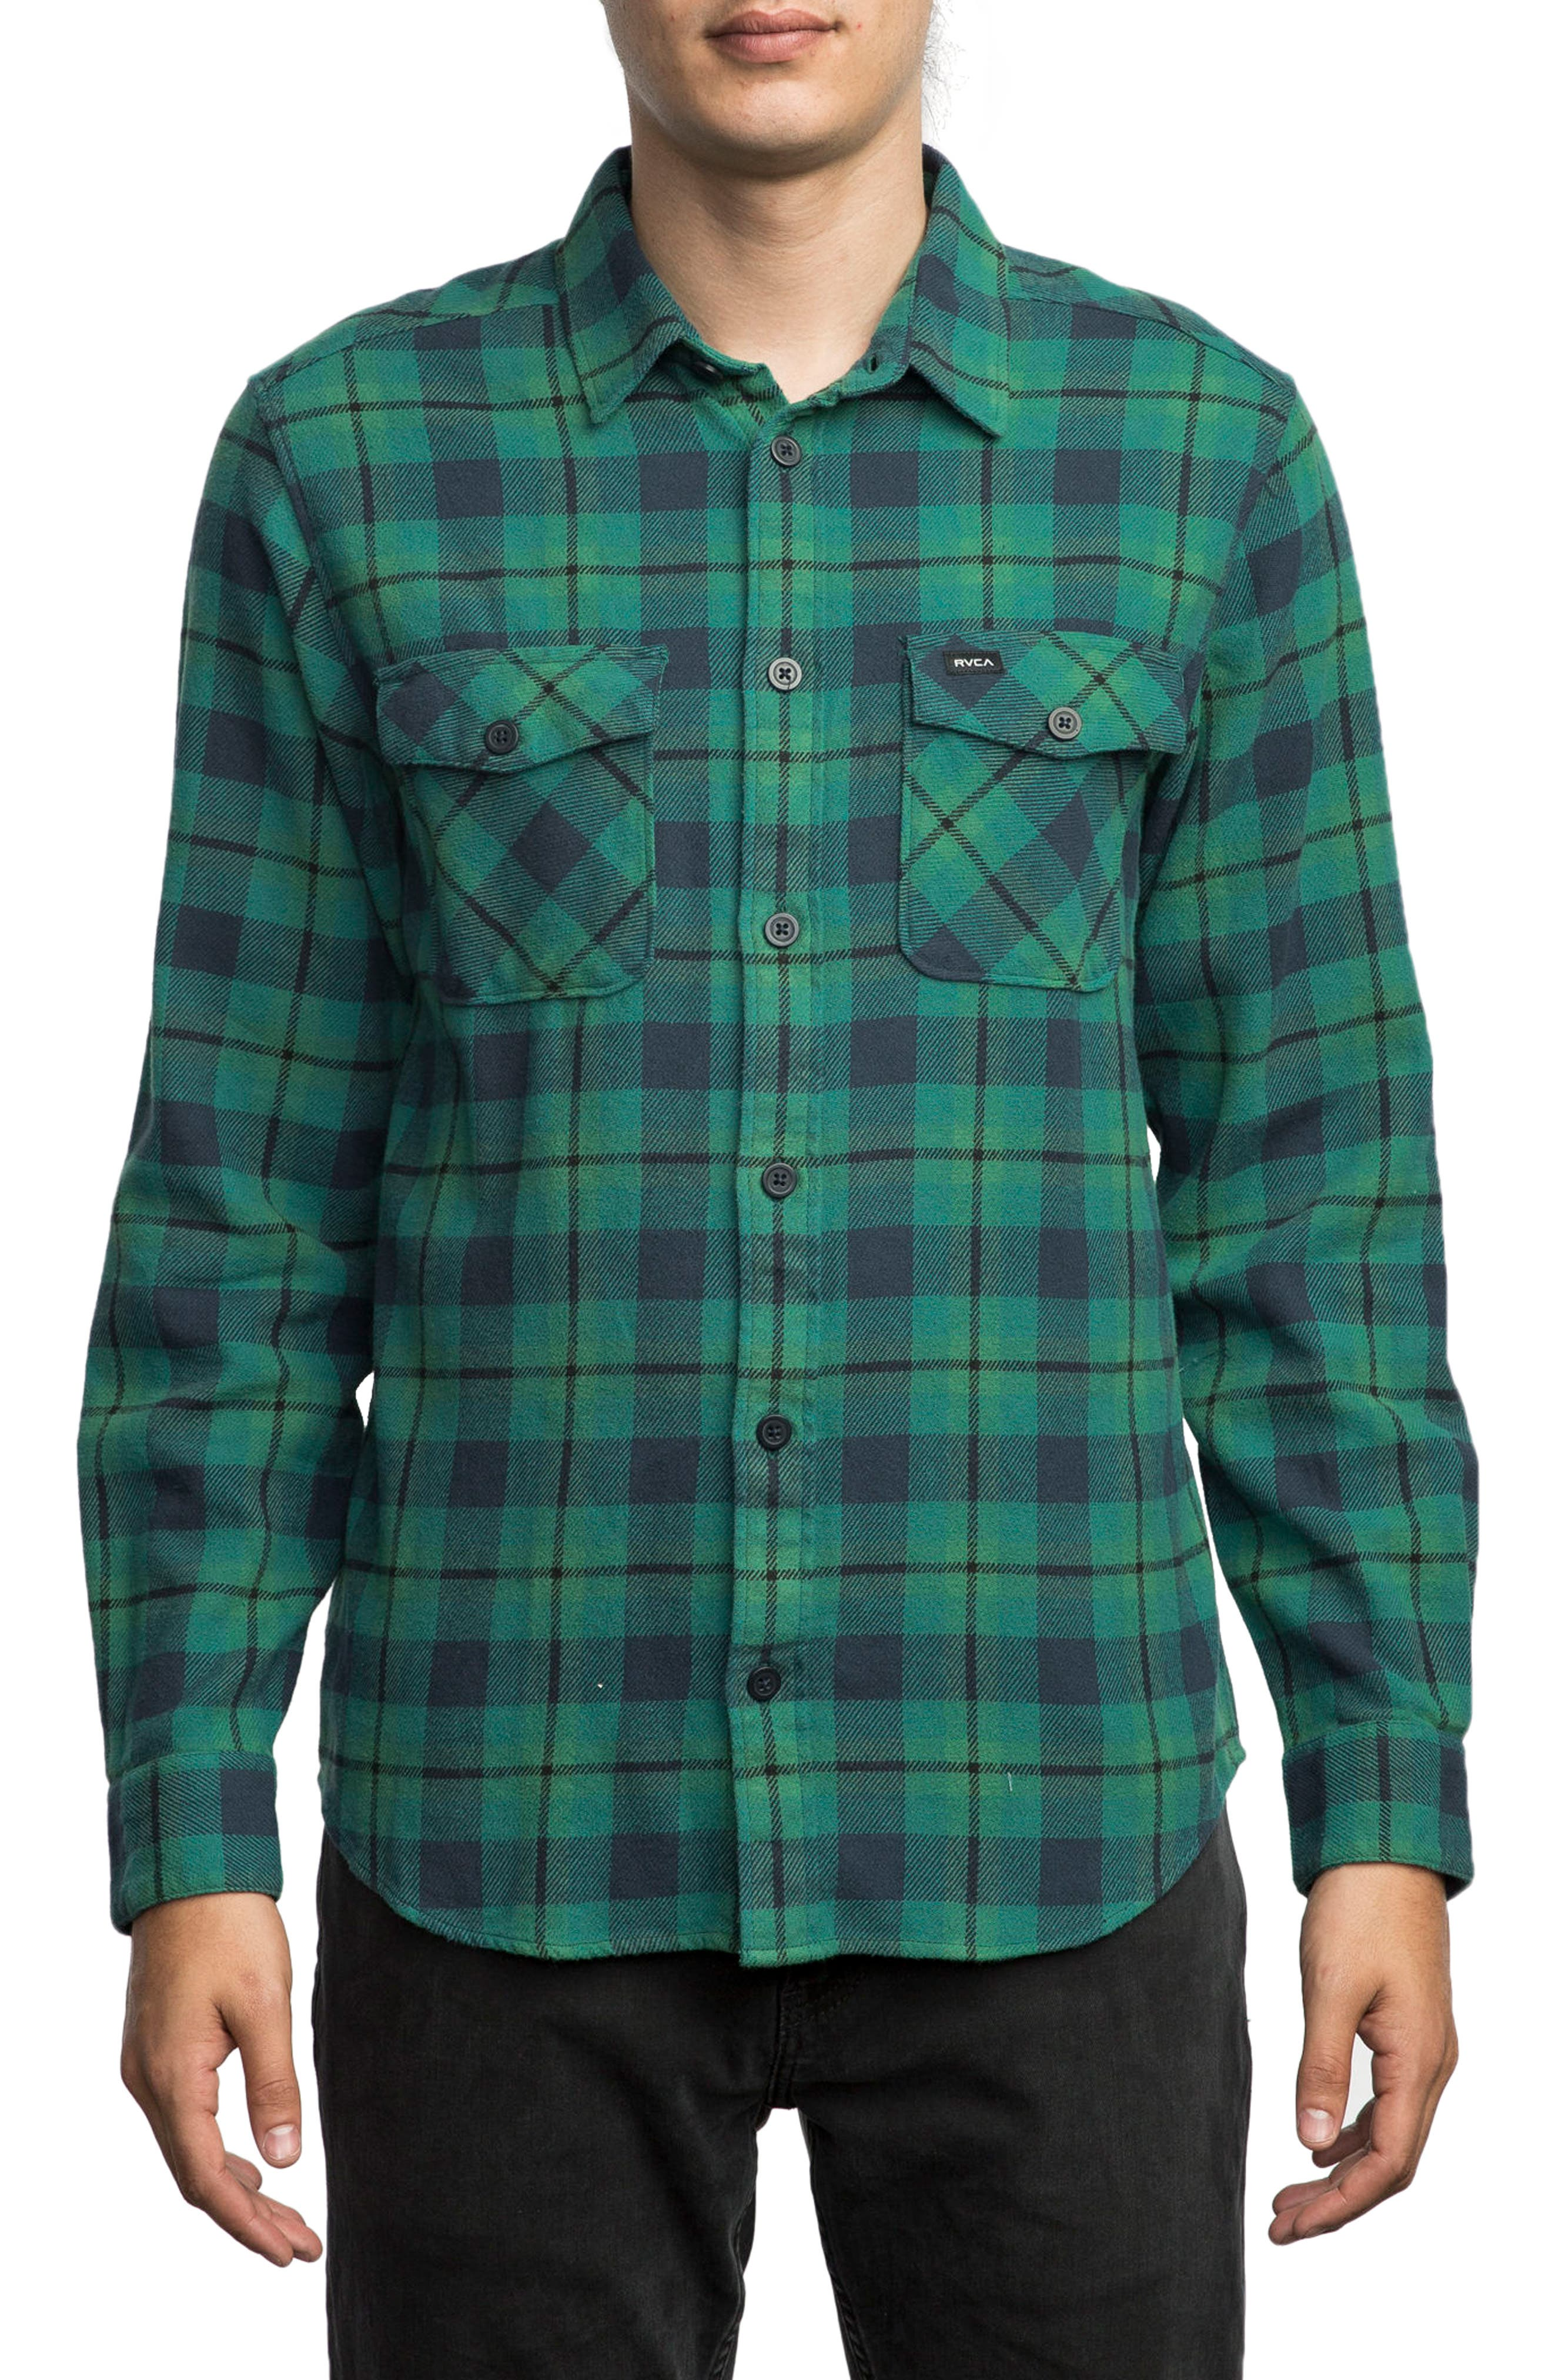 Main Image - RVCA 'That'll Work' Trim Fit Plaid Flannel Shirt